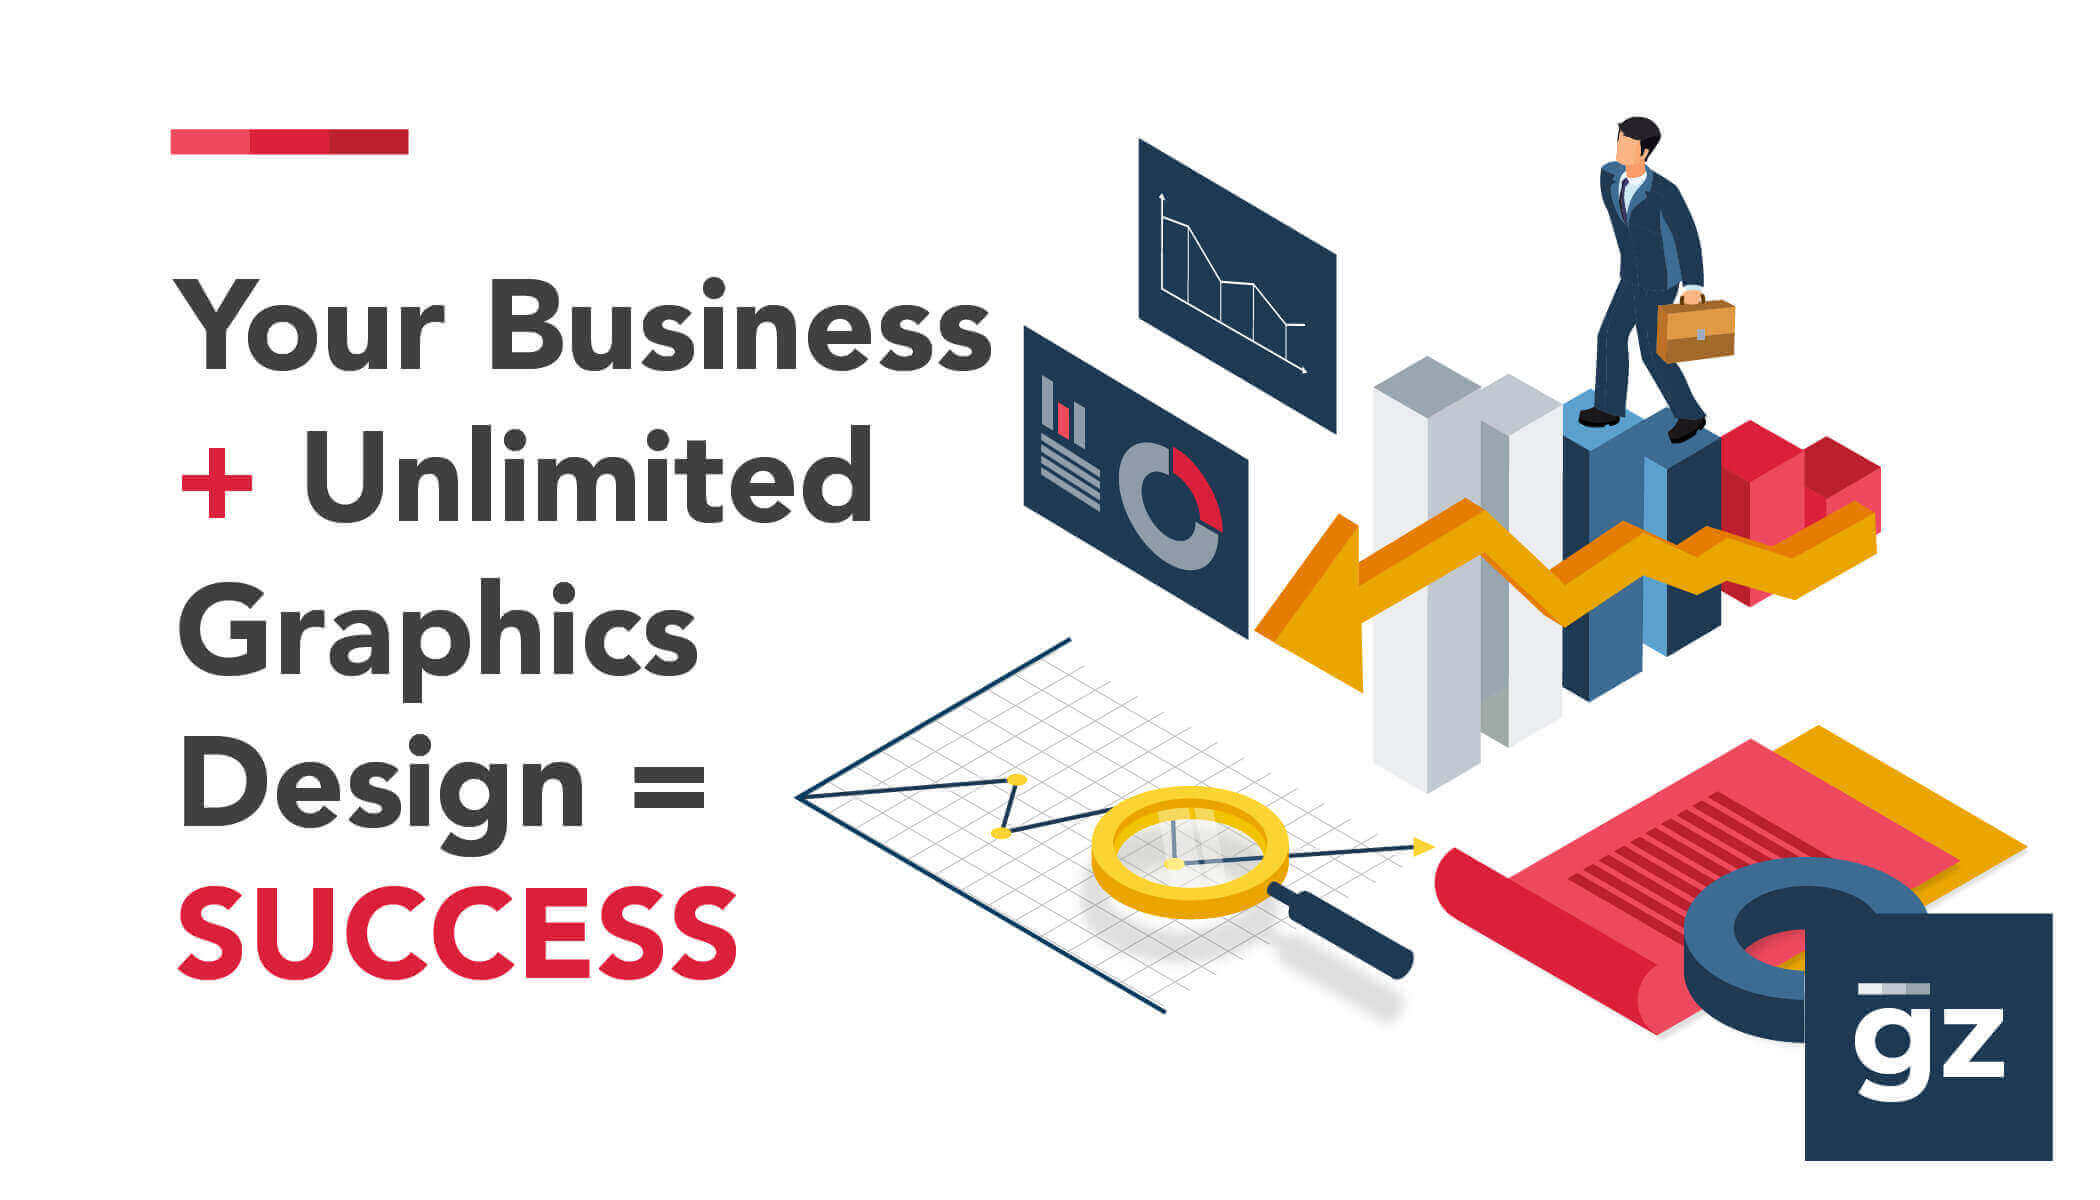 Your Business + Unlimited Graphics Design = SUCCESS